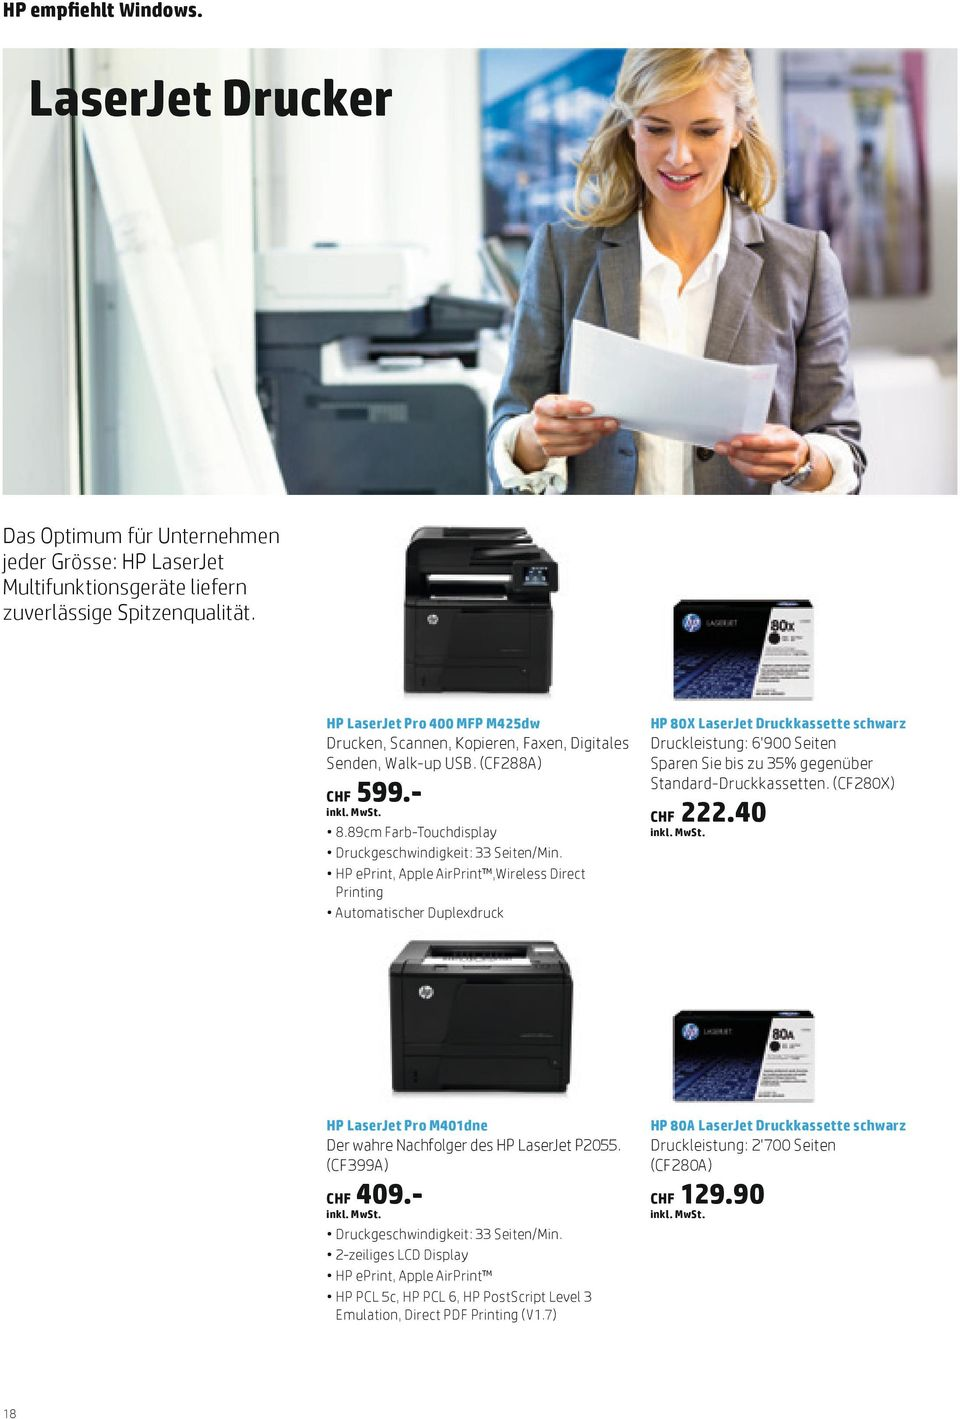 HP eprint, Apple AirPrint,Wireless Direct Printing Automatischer Duplexdruck HP LaserJet Pro M401dne Der wahre Nachfolger des HP LaserJet P2055. (CF399A) 409.- Druckgeschwindigkeit: 33 Seiten/Min.